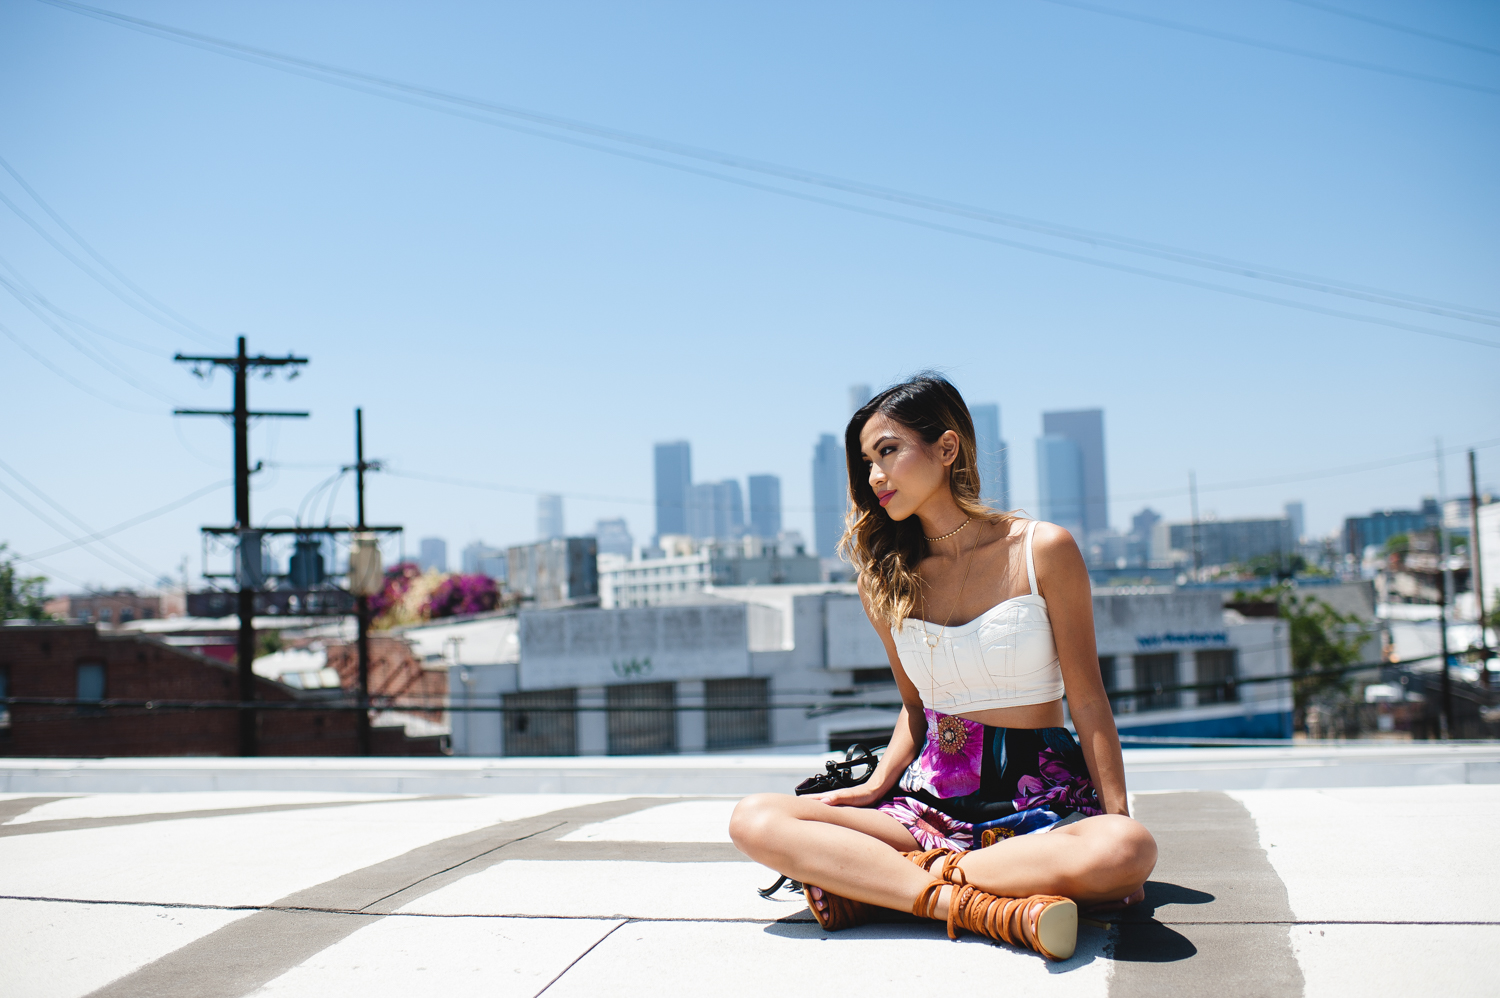 WHAT TO WEAR TO A ROOFTOP